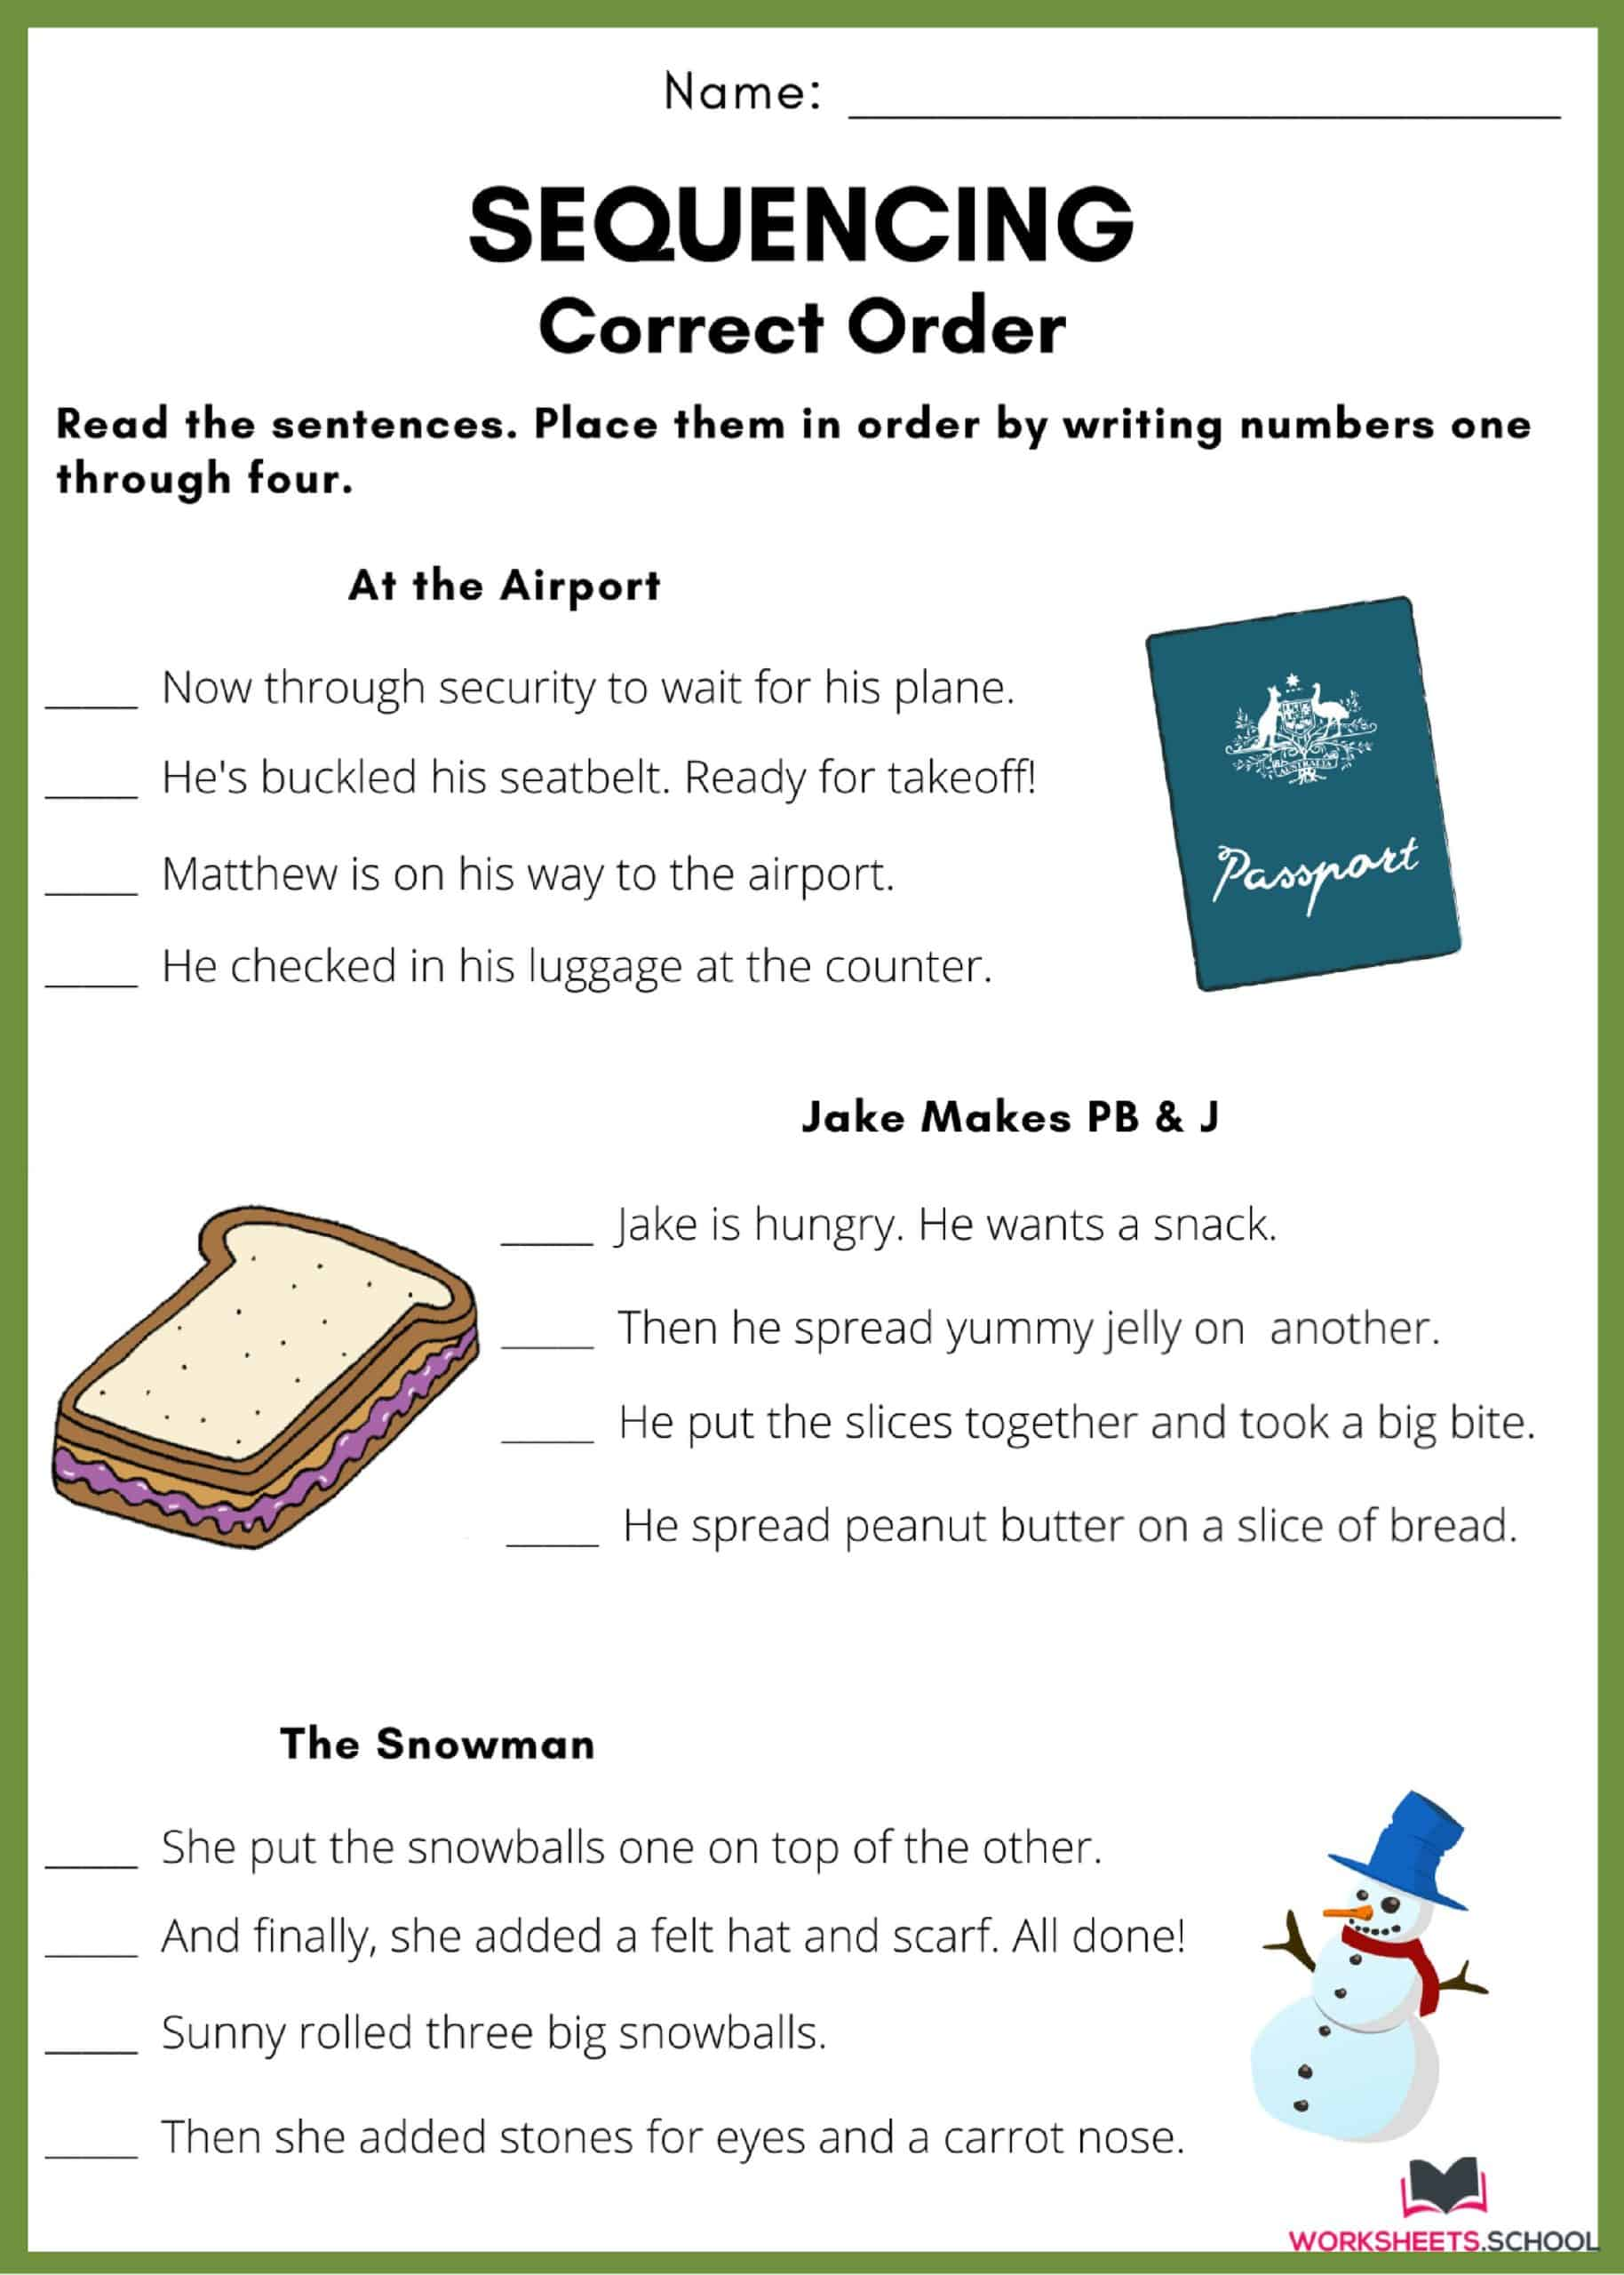 Sequencing Worksheet - Build the Story 3